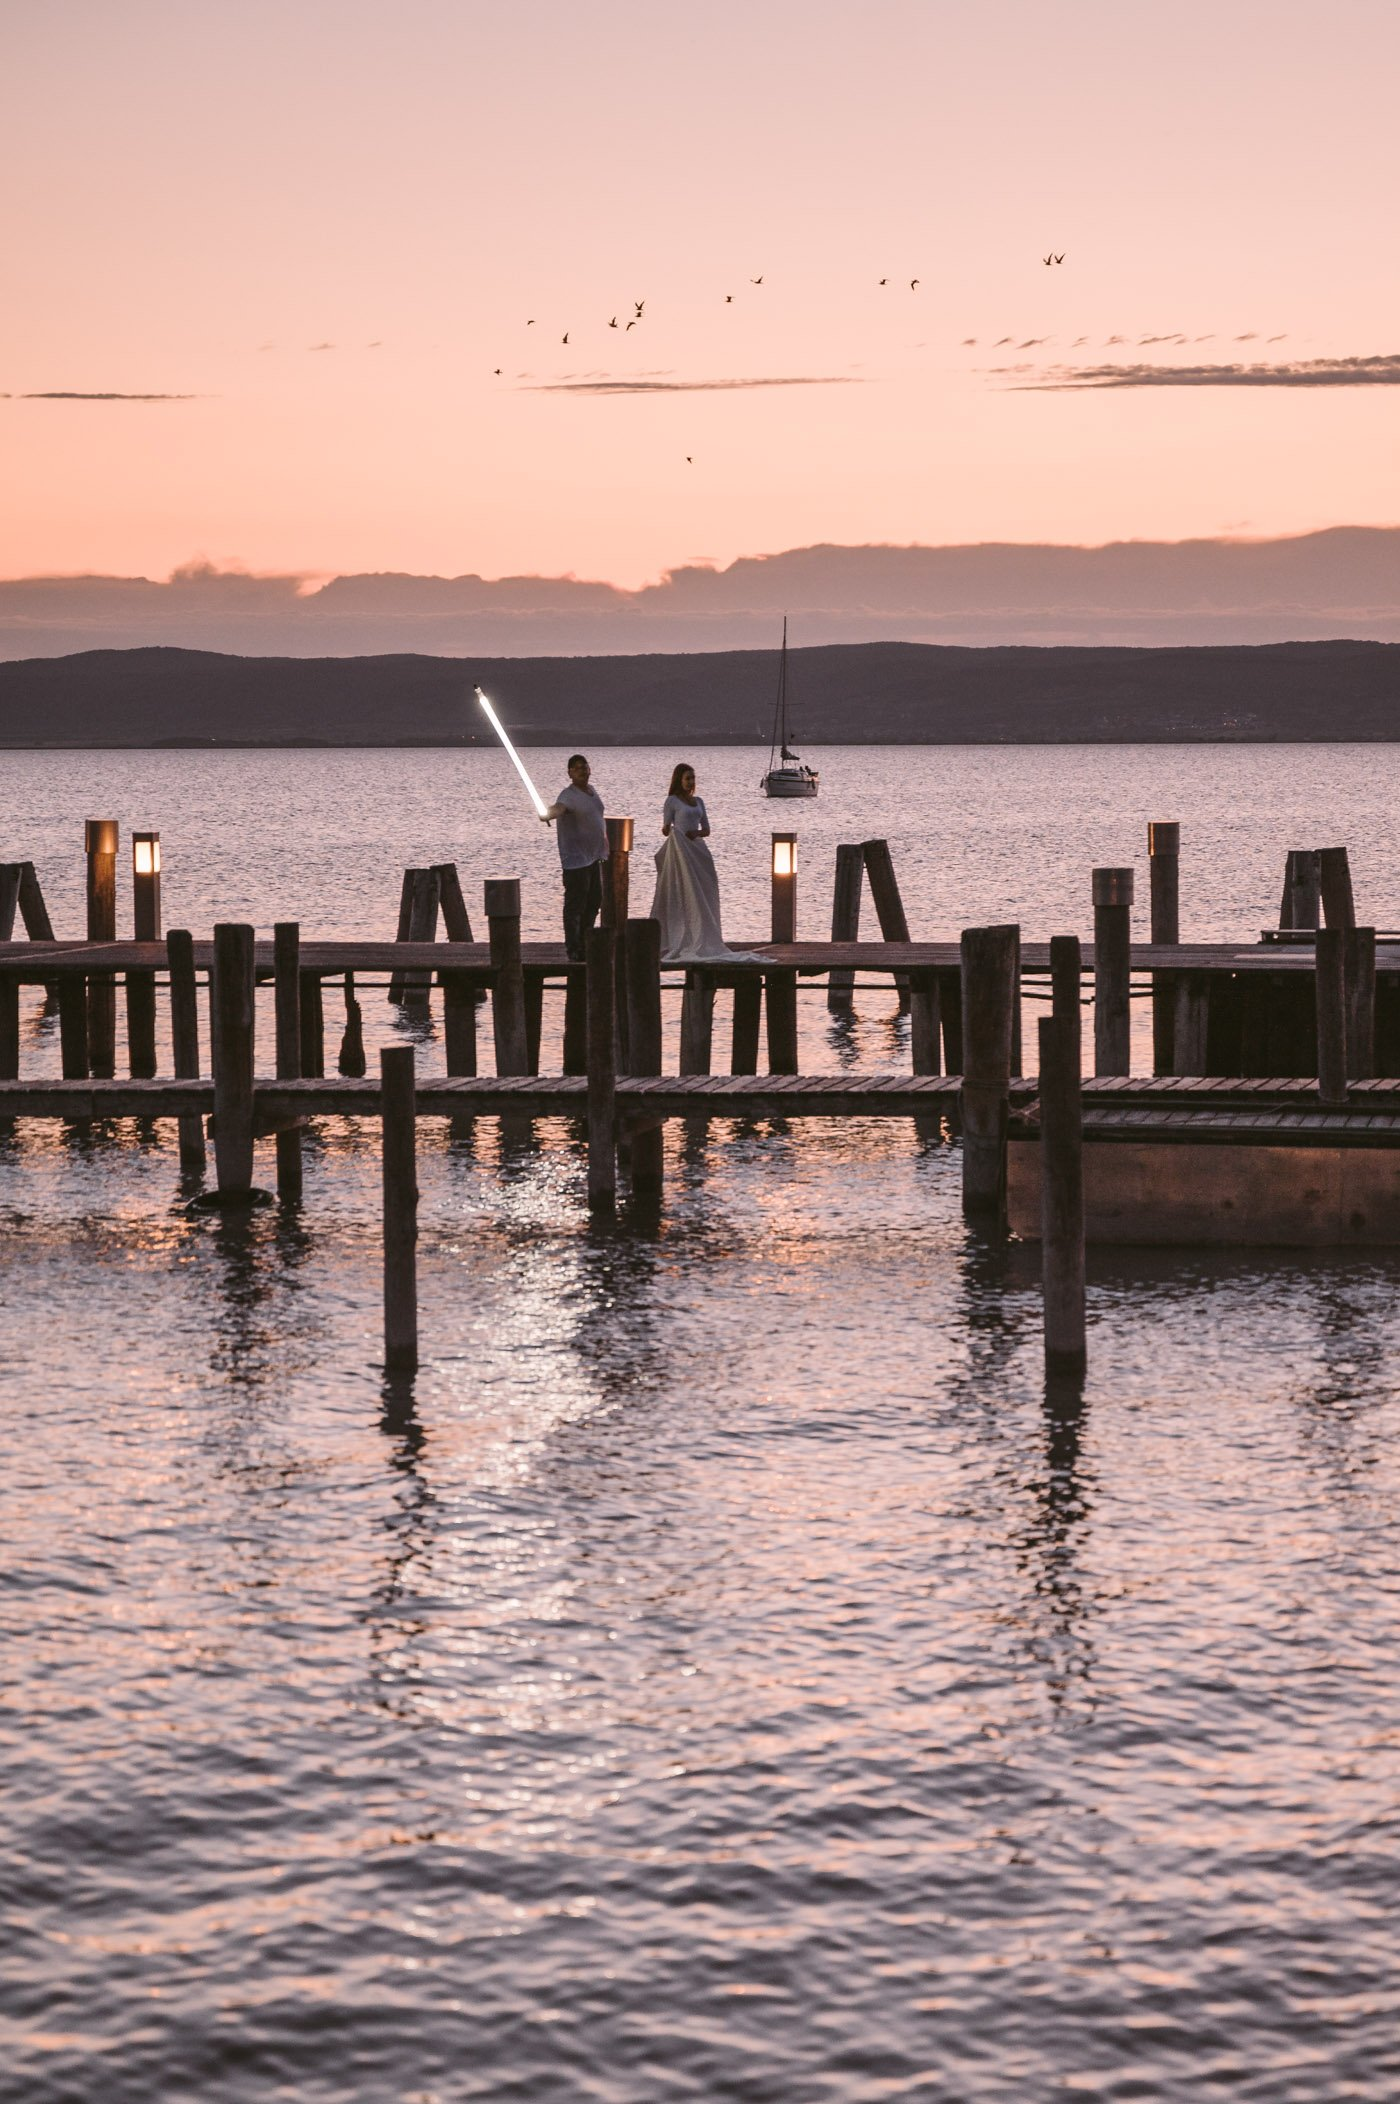 Lightpainting action in Podersdorf at the lighthouse during sunset